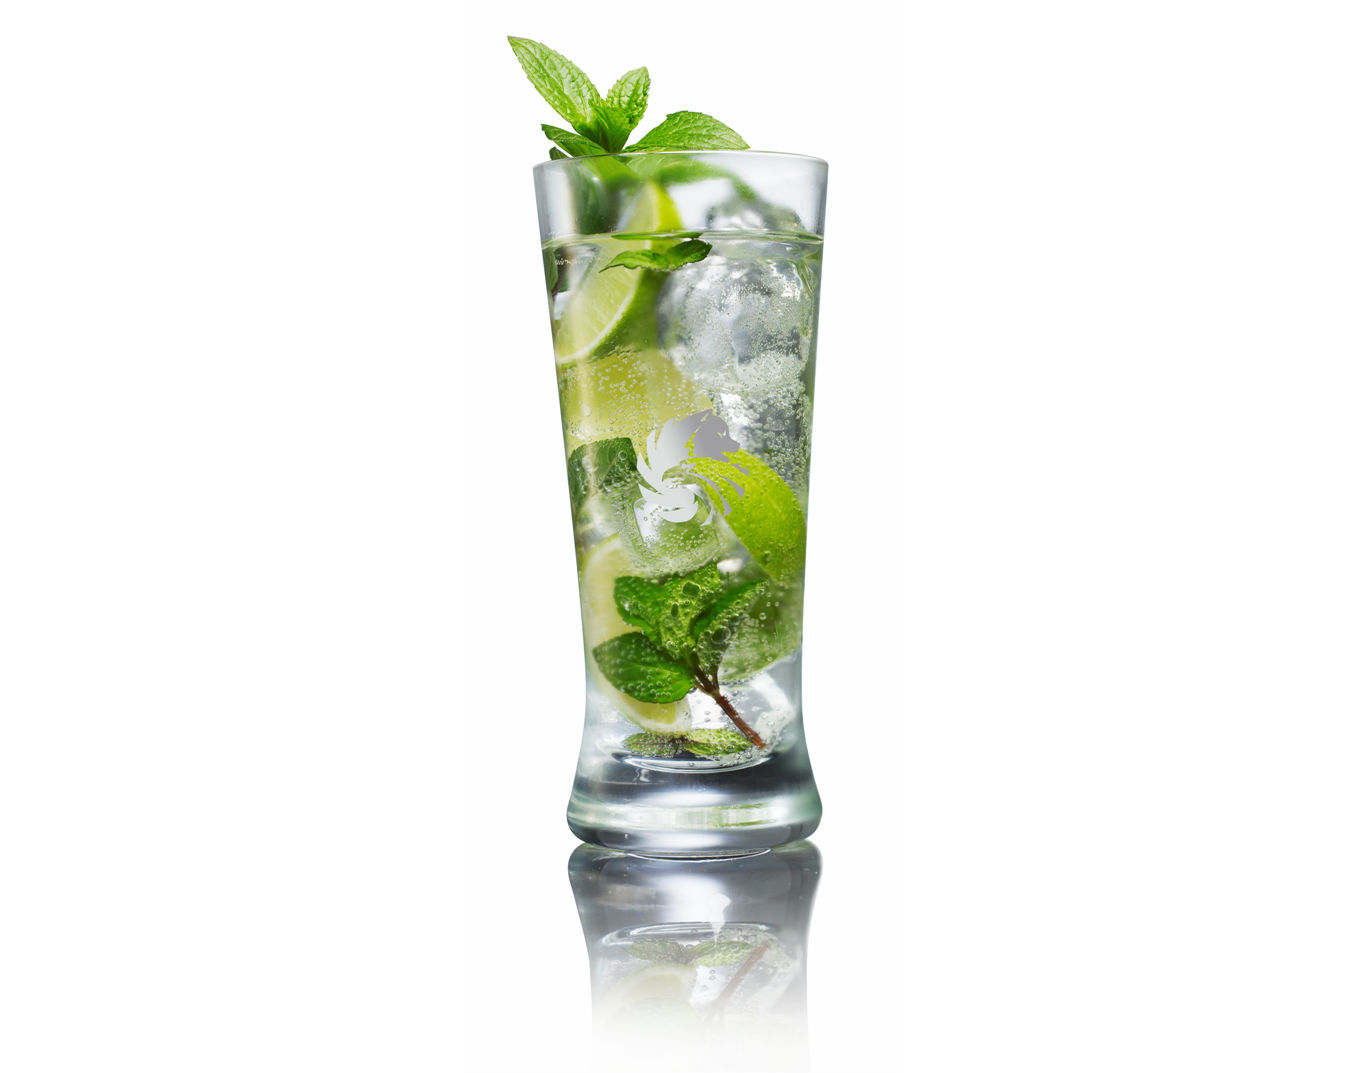 Mojito Desktop Wallpapers Wallpapers High Quality